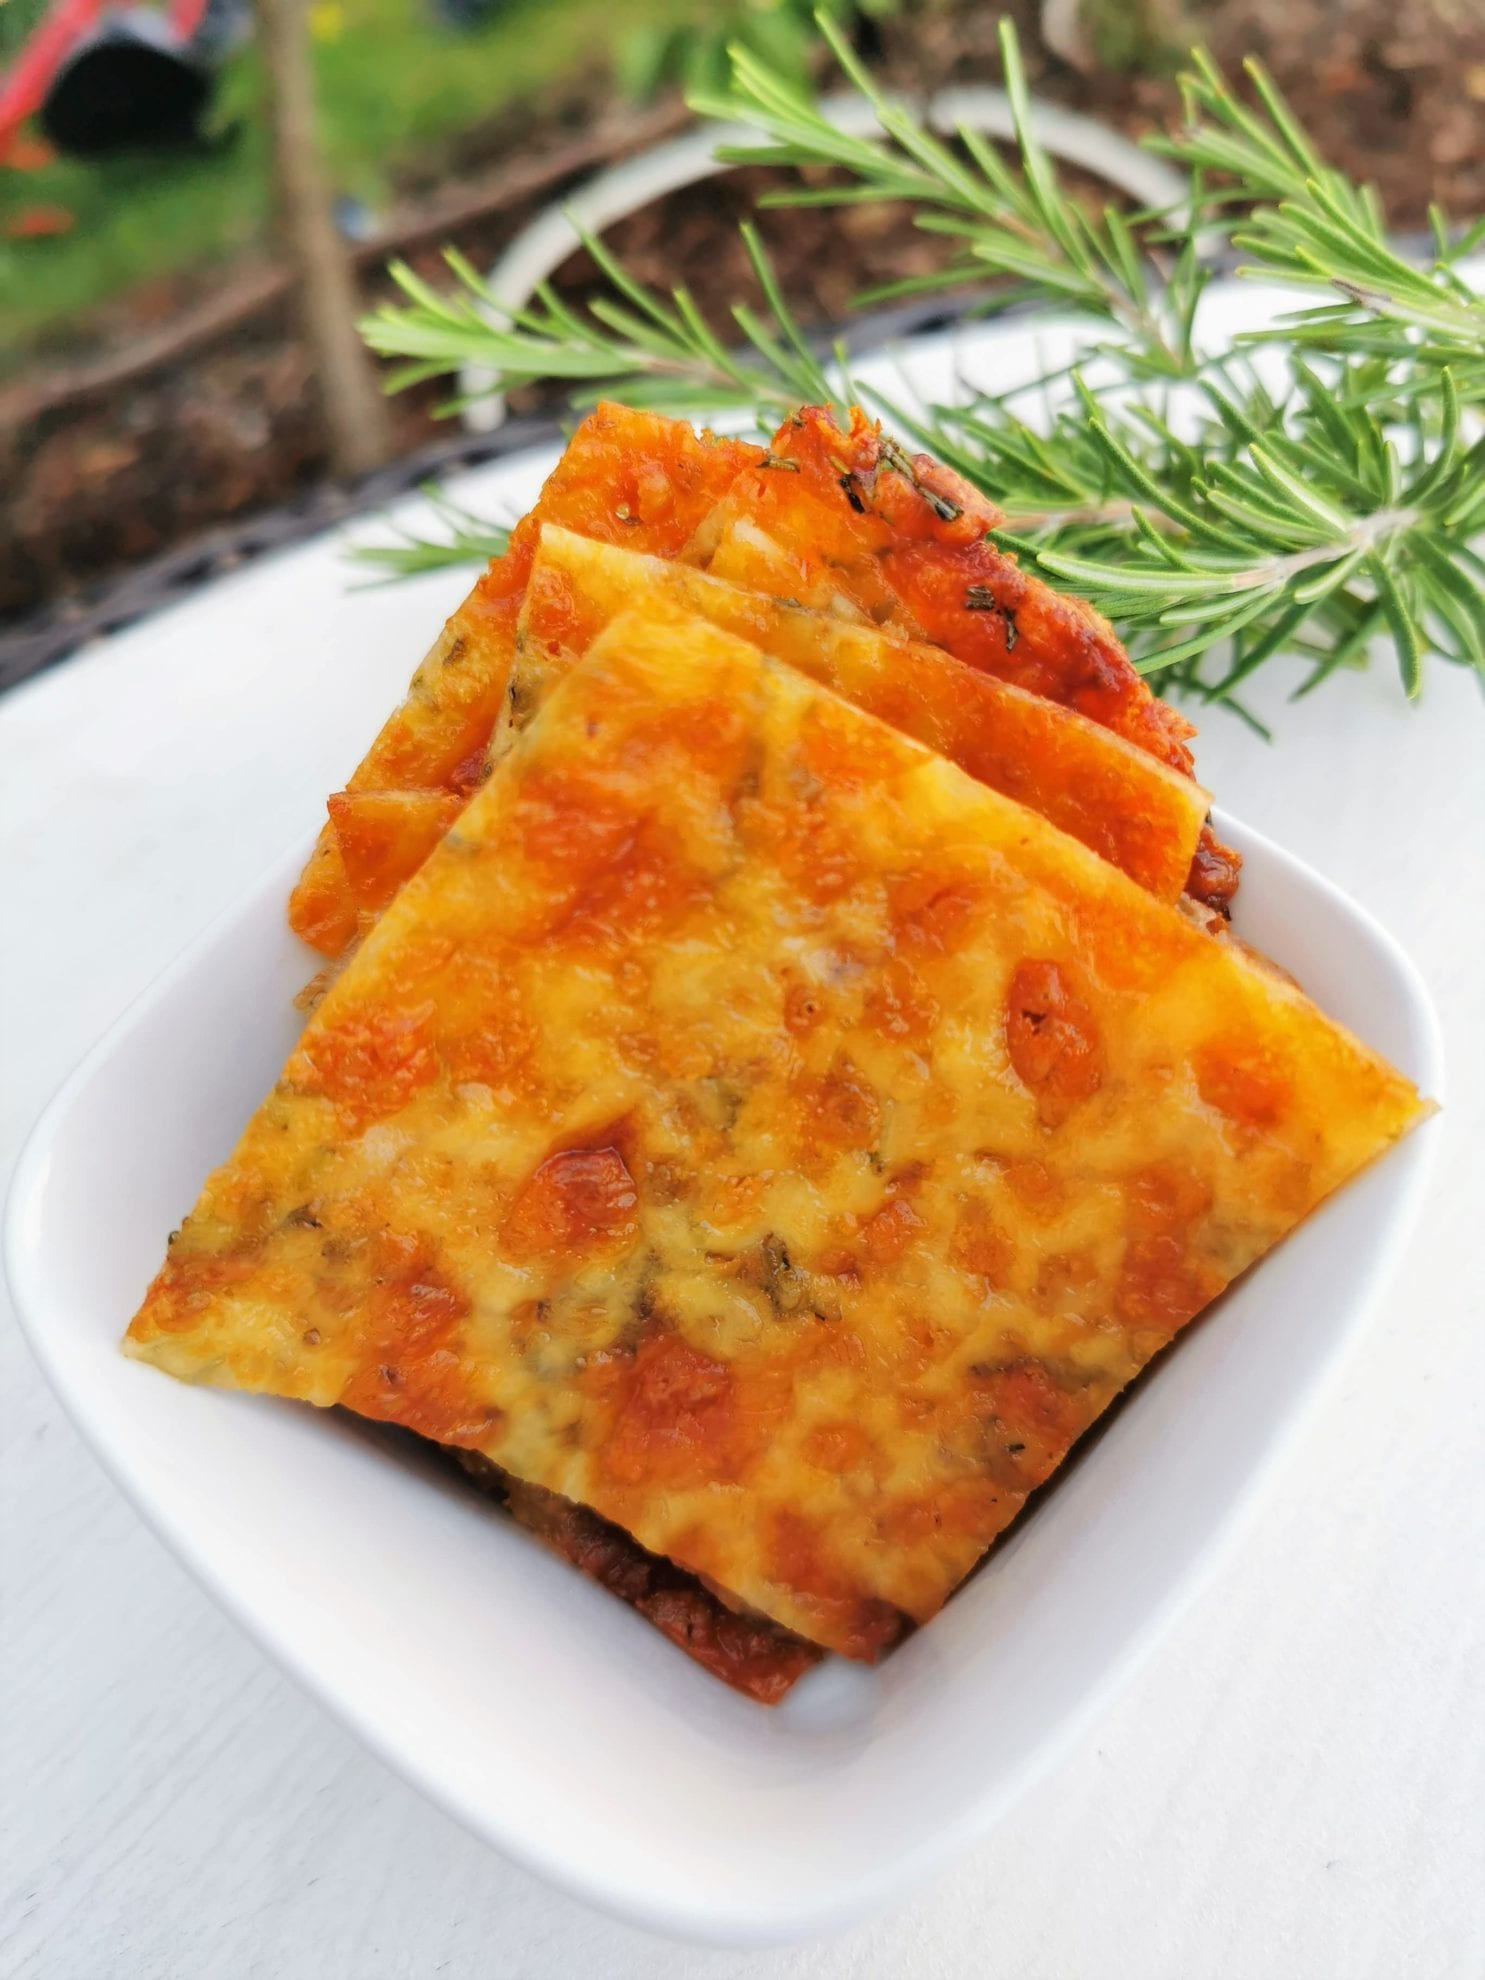 Kaesechips Essen low carb